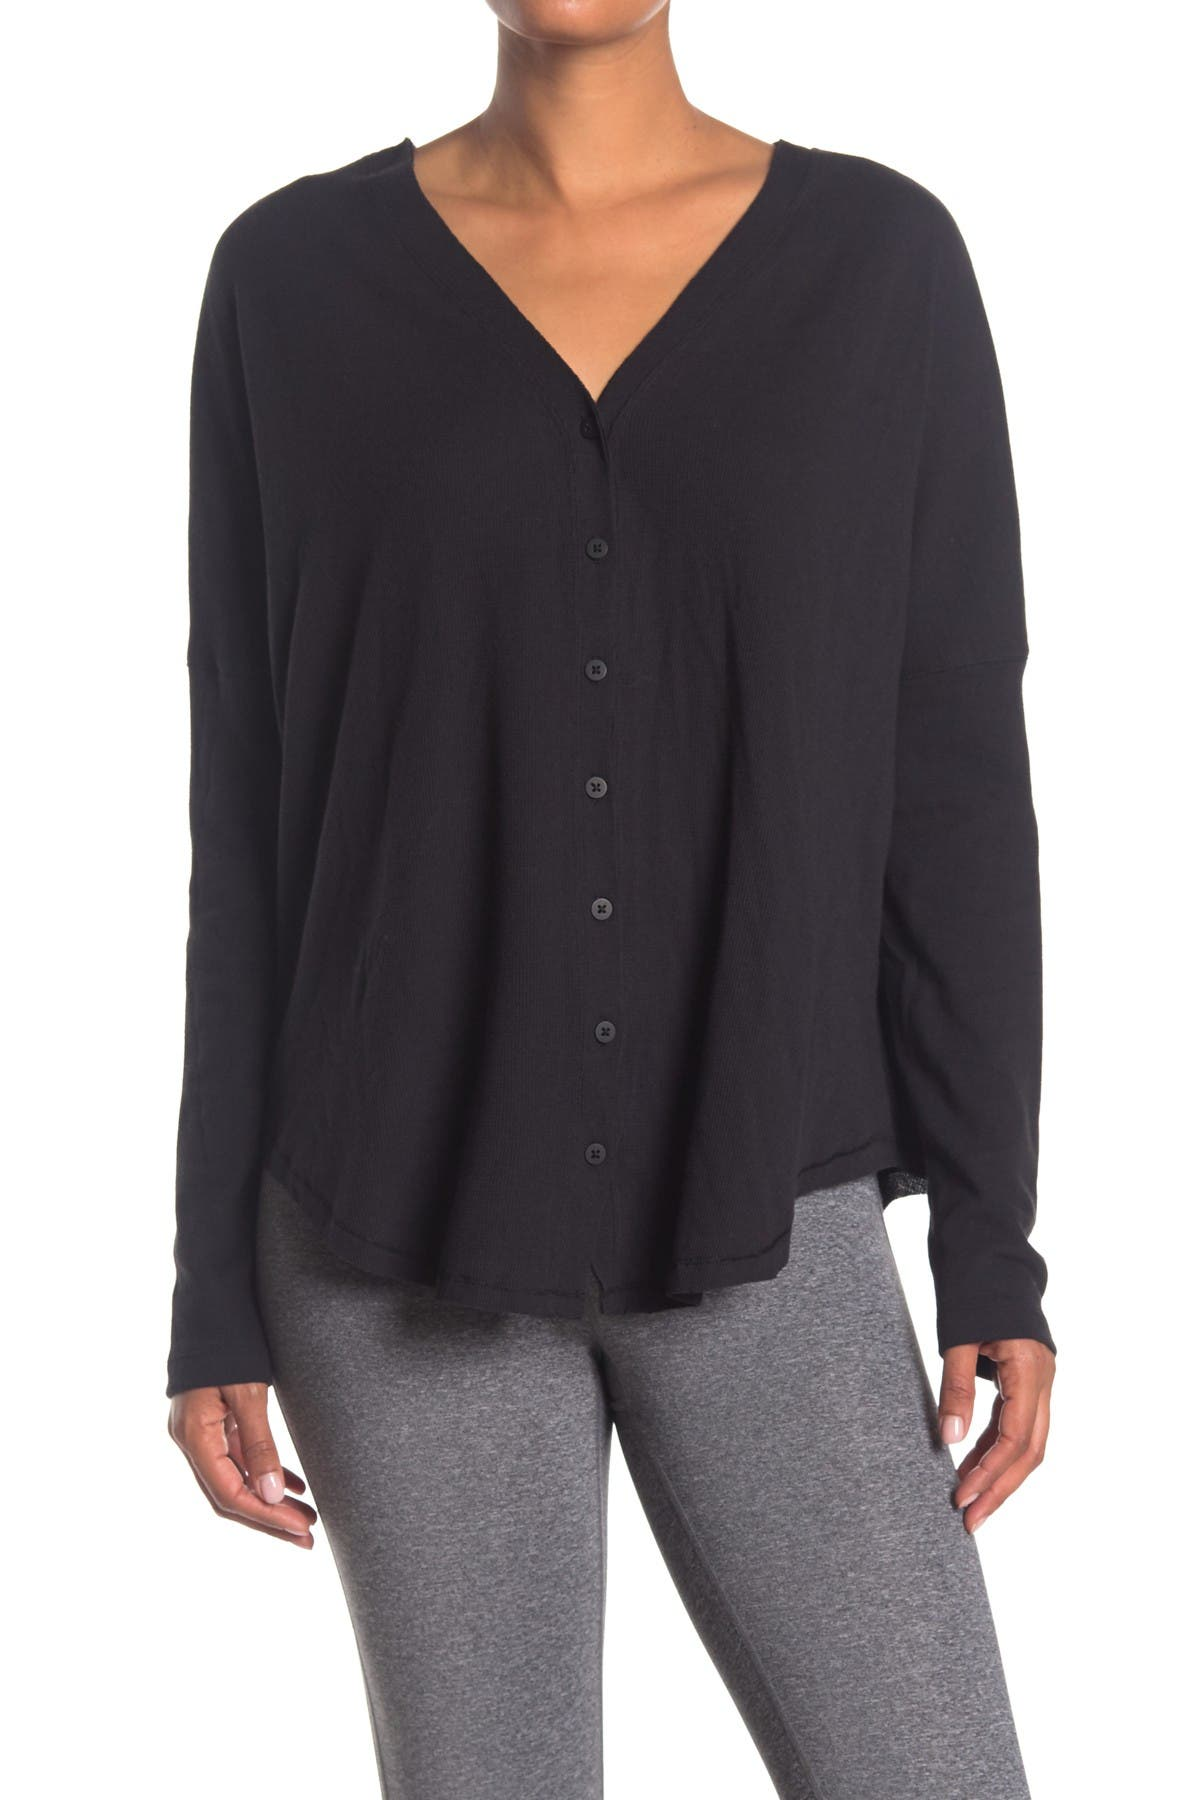 Image of X by Gottex Thermal Button Tie Top